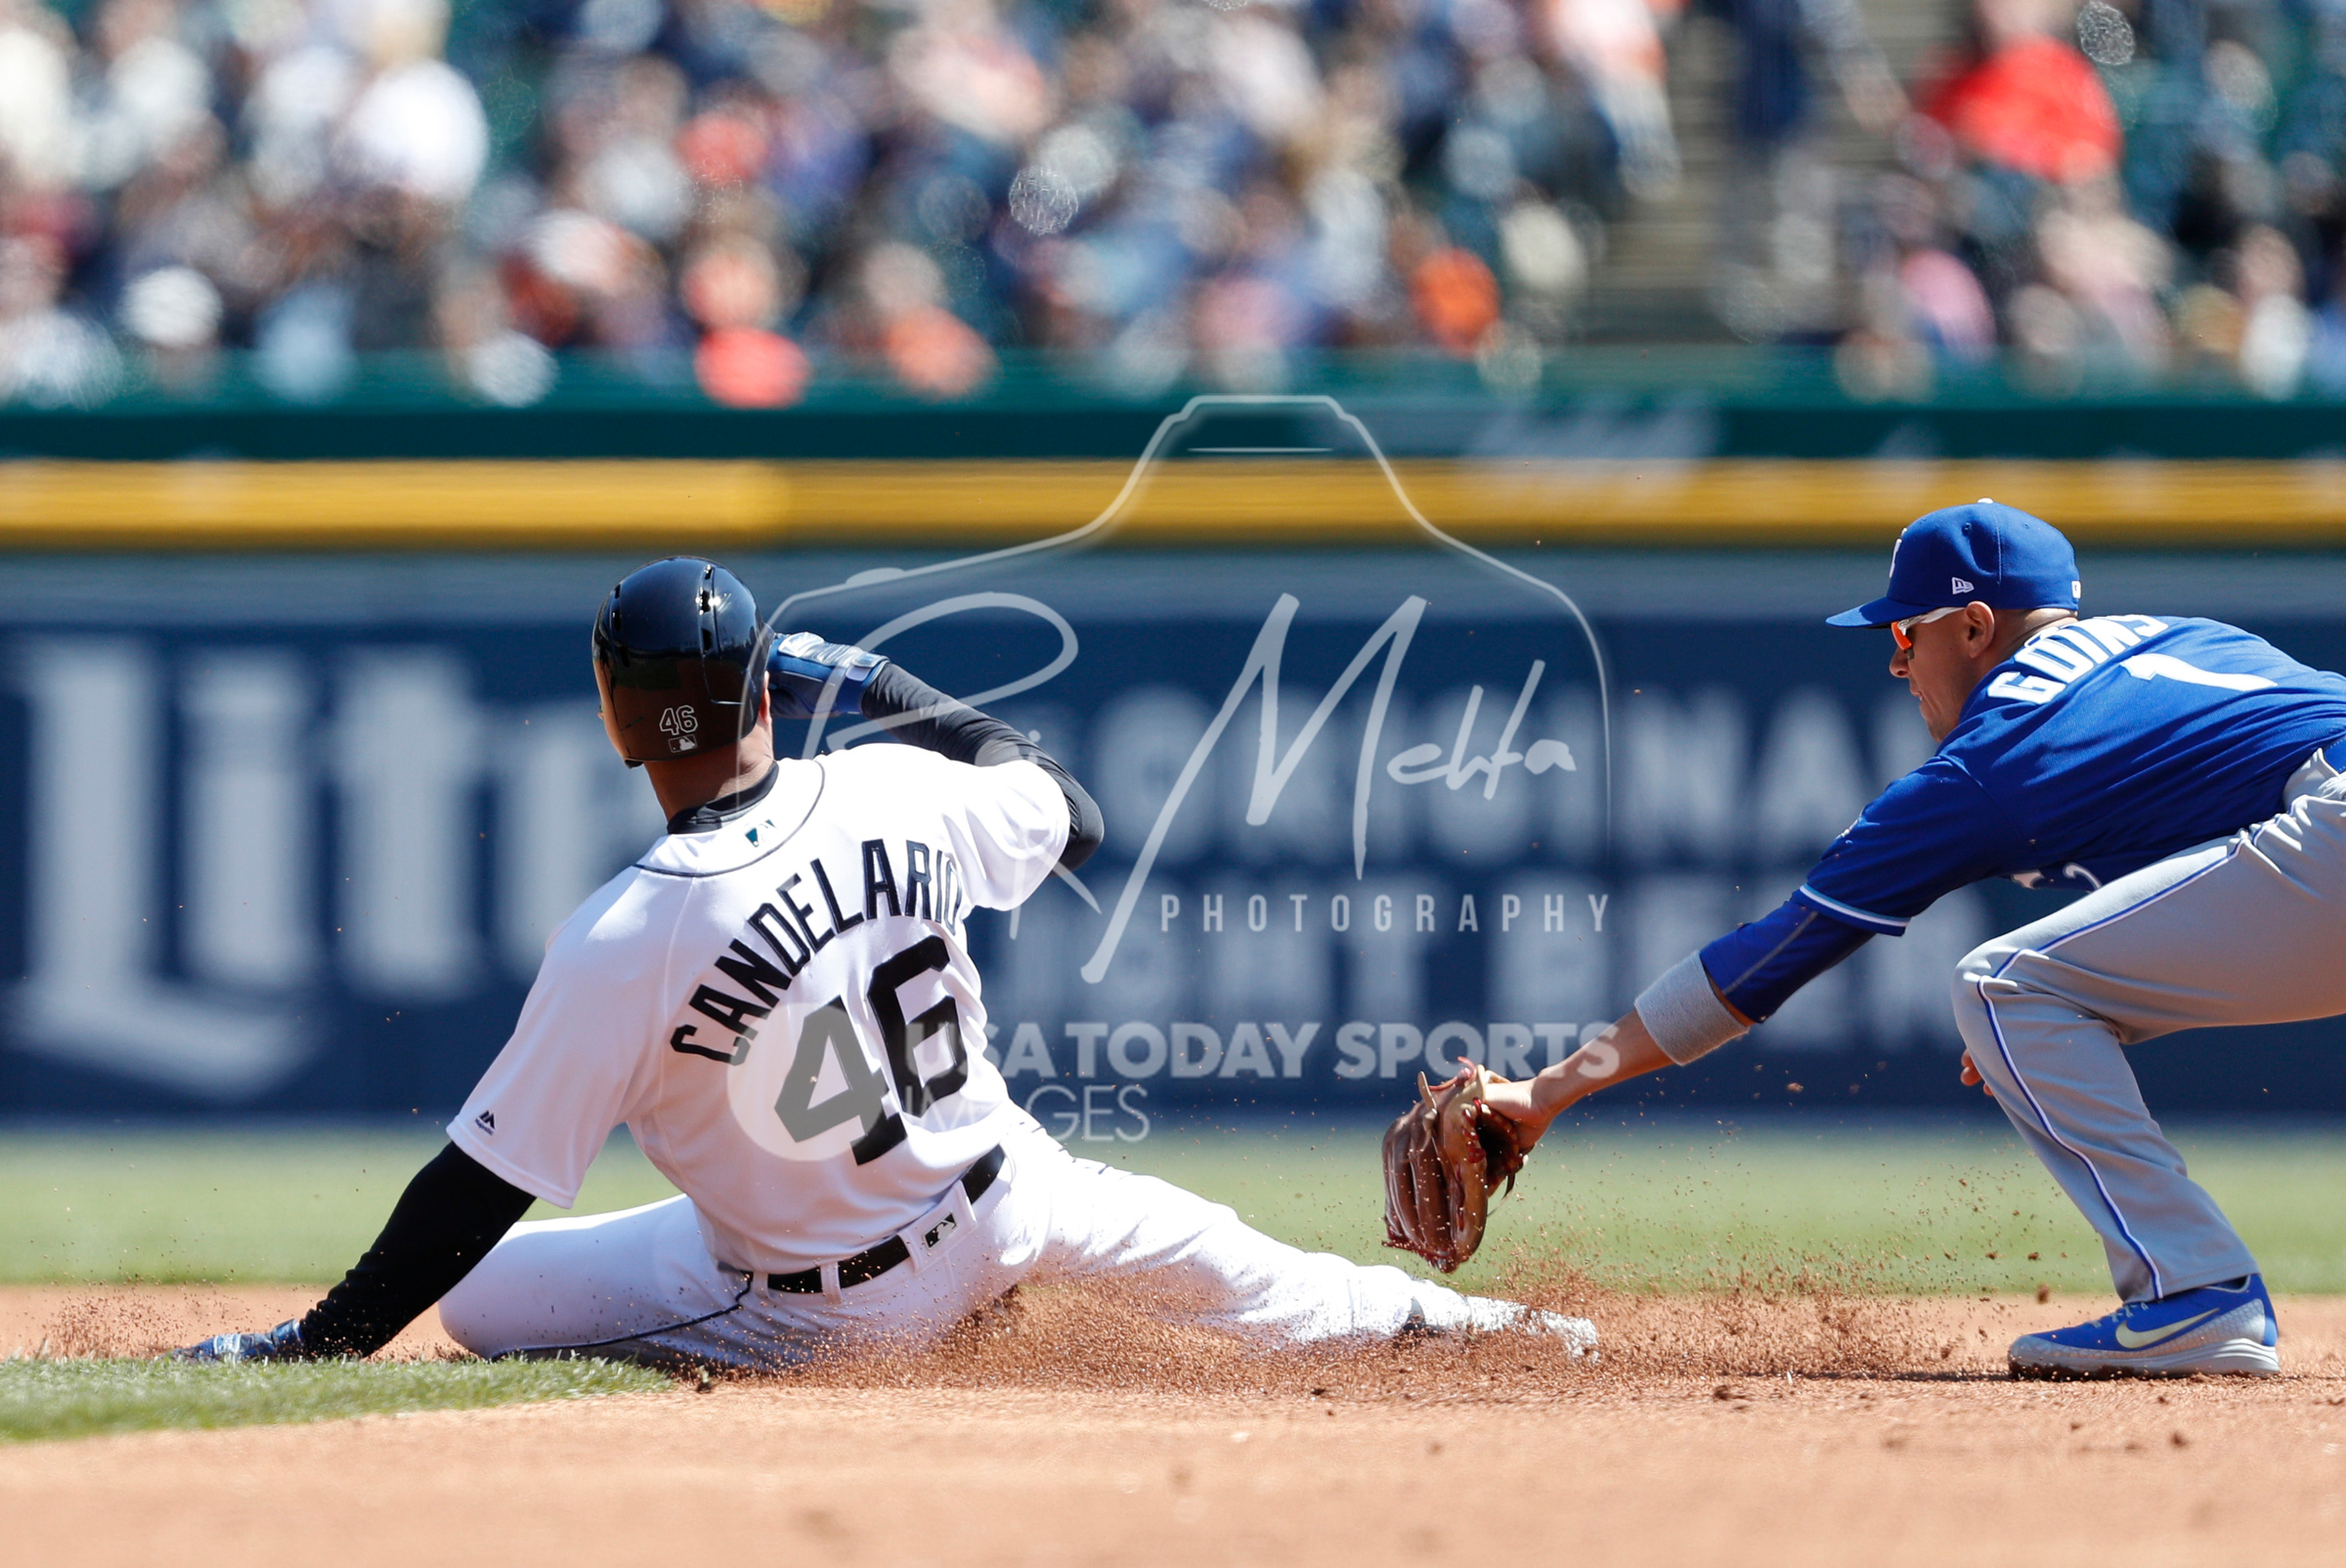 Apr 22, 2018; Detroit, MI, USA; Detroit Tigers third baseman Jeimer Candelario (46) slides safe into second base as Kansas City Royals second baseman Ryan Goins (1) misses the tag during the first inning at Comerica Park. Mandatory Credit: Raj Mehta-USA TODAY Sports